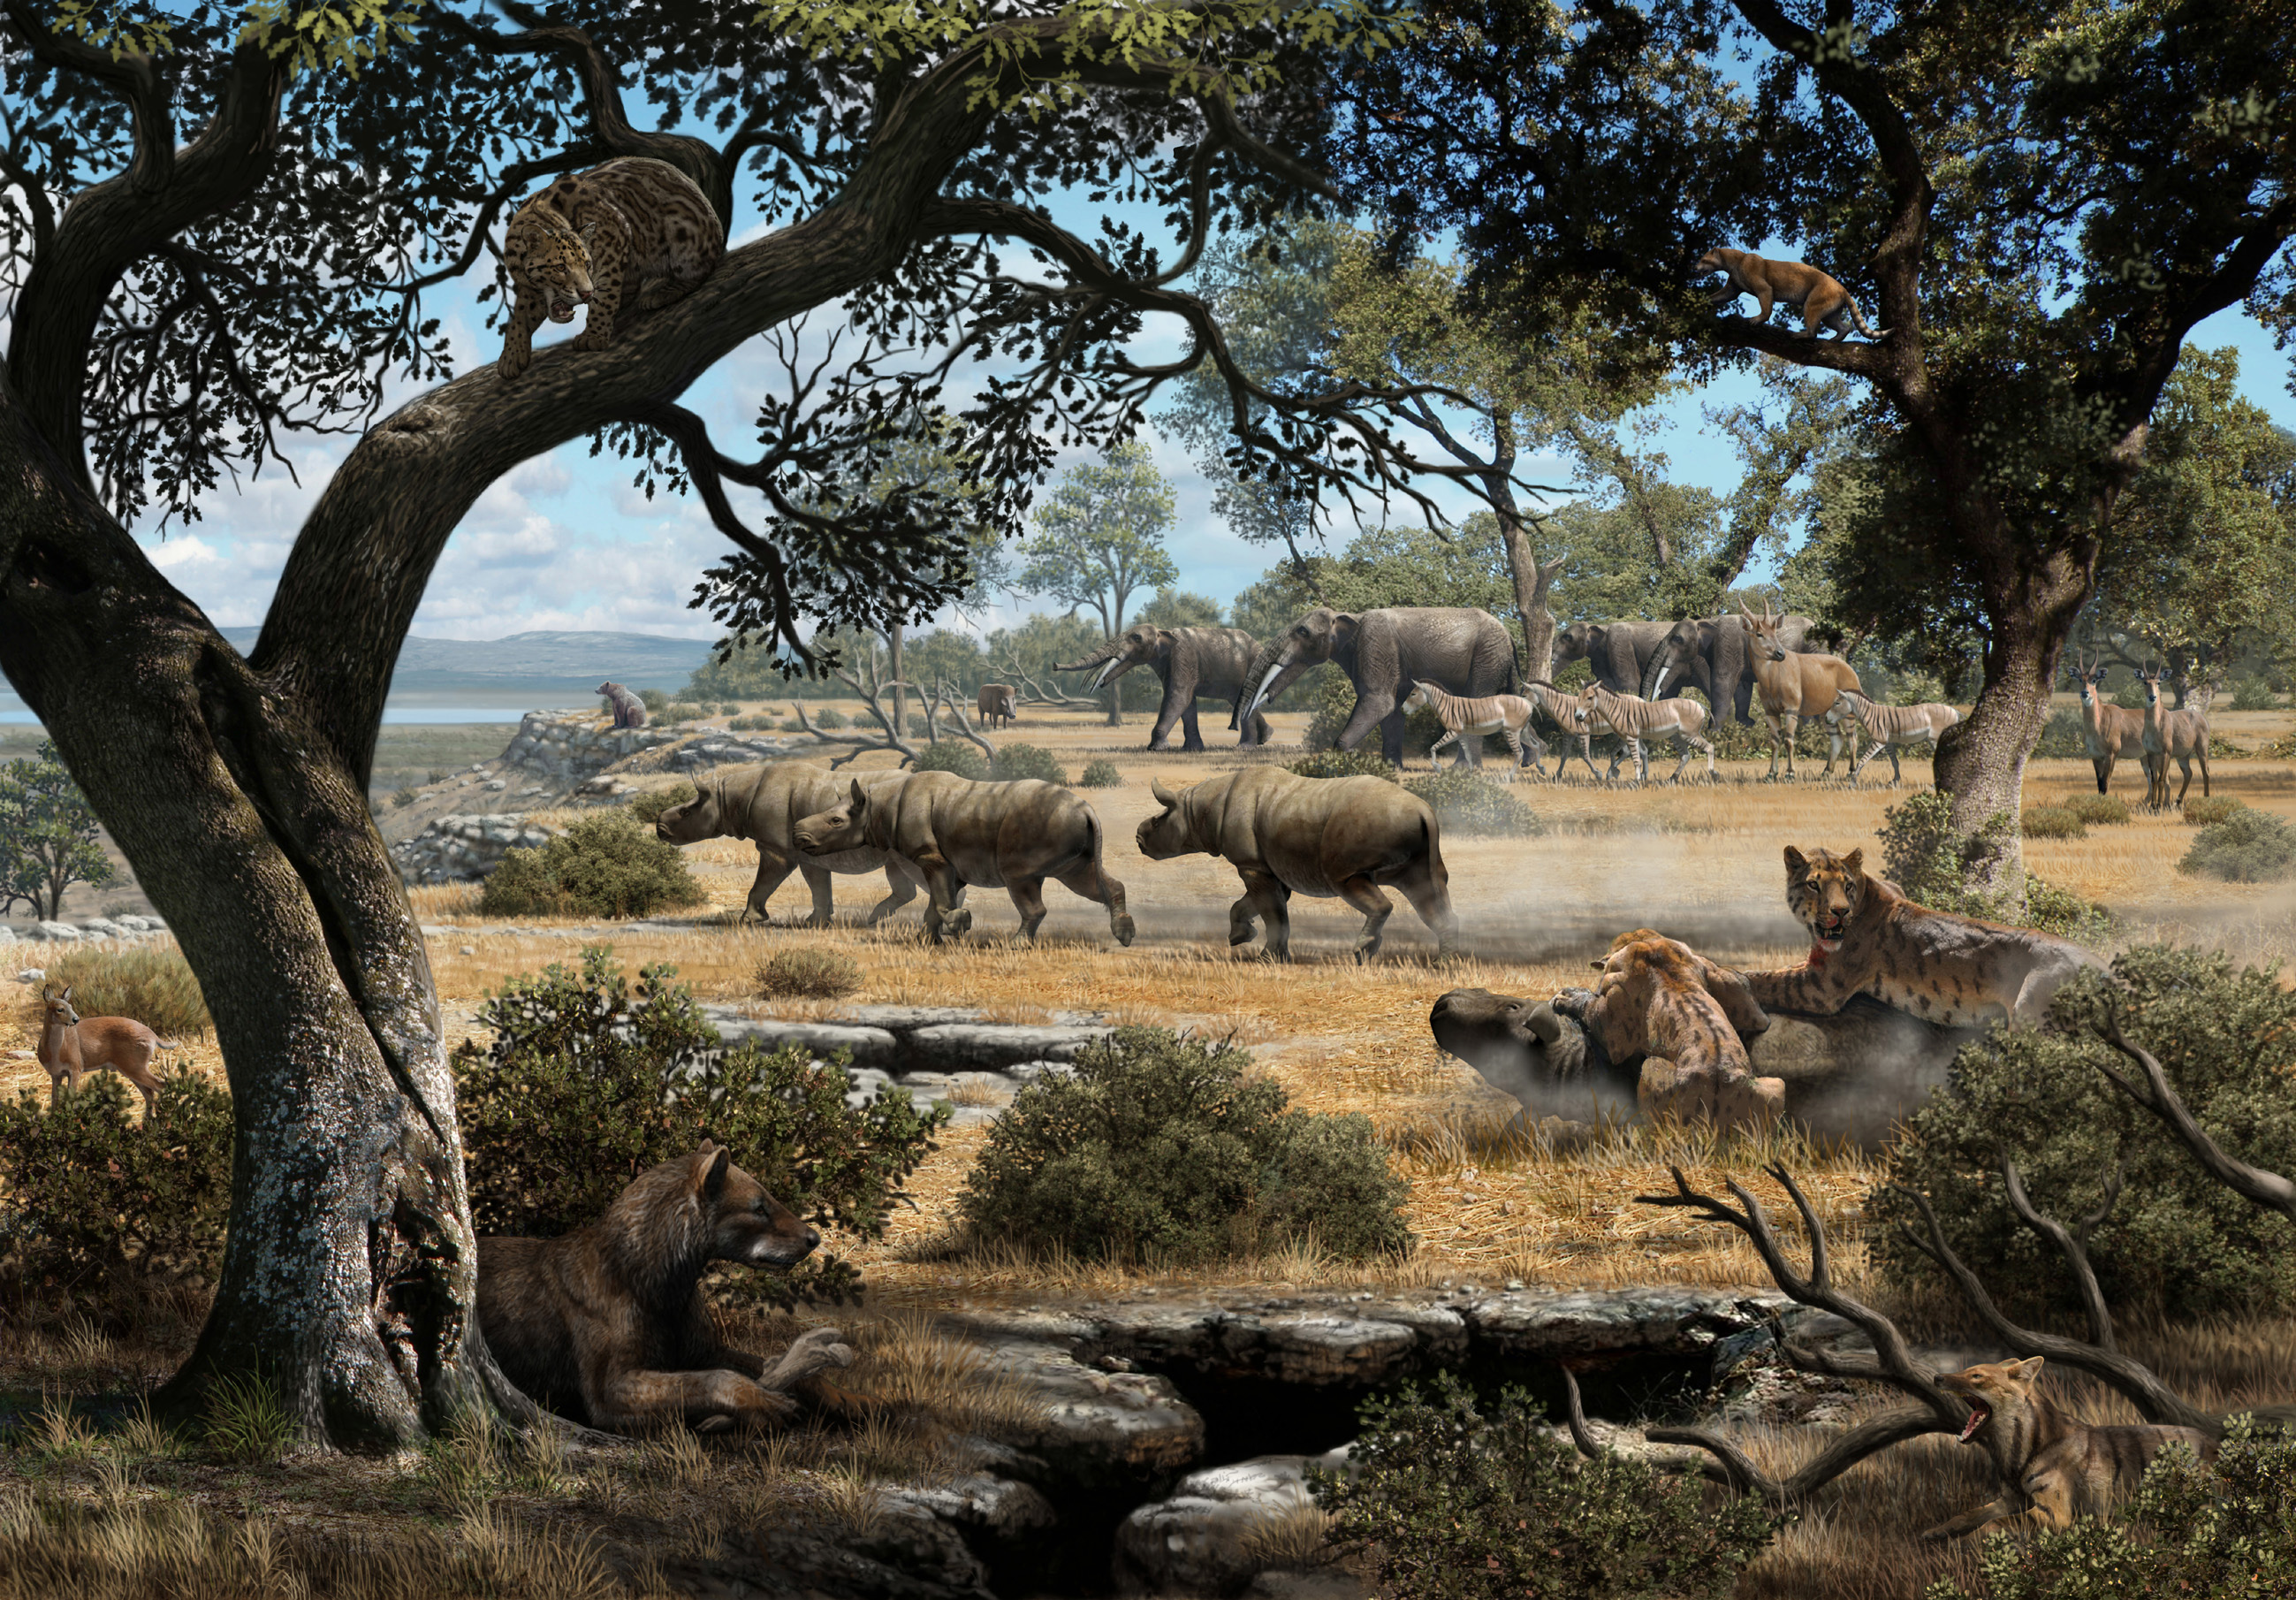 This illustration depicts how the region of Cerro de los Batallones in central Spain likely looked 9 million years ago. Researchers led by the University of Michigan have used carbon records in the teeth of fossilized predators to shed light on how saber-toothed cats and bear dogs shared space and prey during the late Miocene period. Image credit: Mauricio Antón